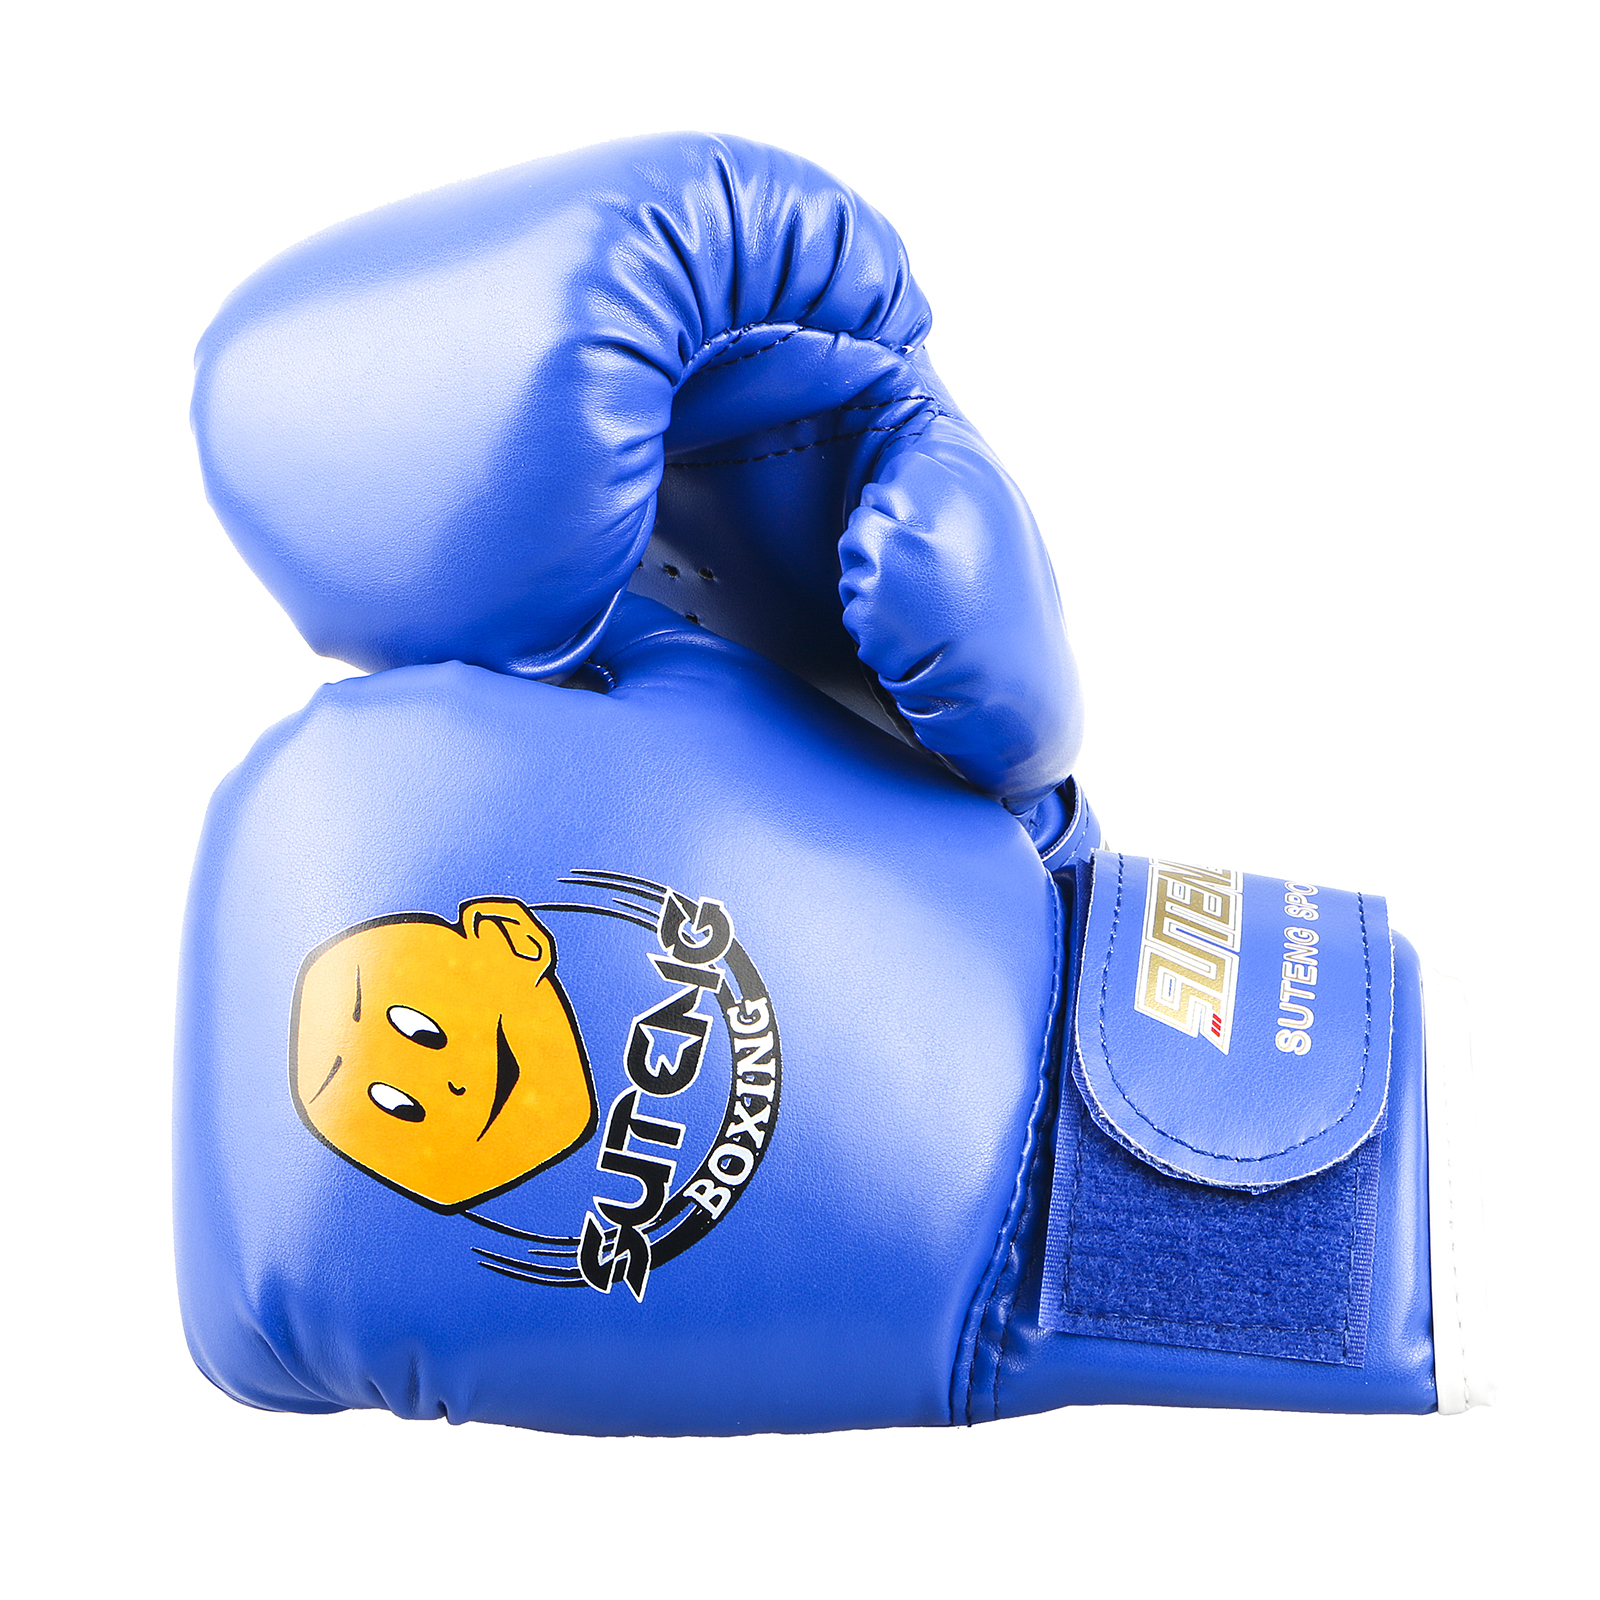 New-Kids-Children-Cartoon-PU-Sparring-Grappling-Training-Boxing-Gloves-Age-3-12 thumbnail 11